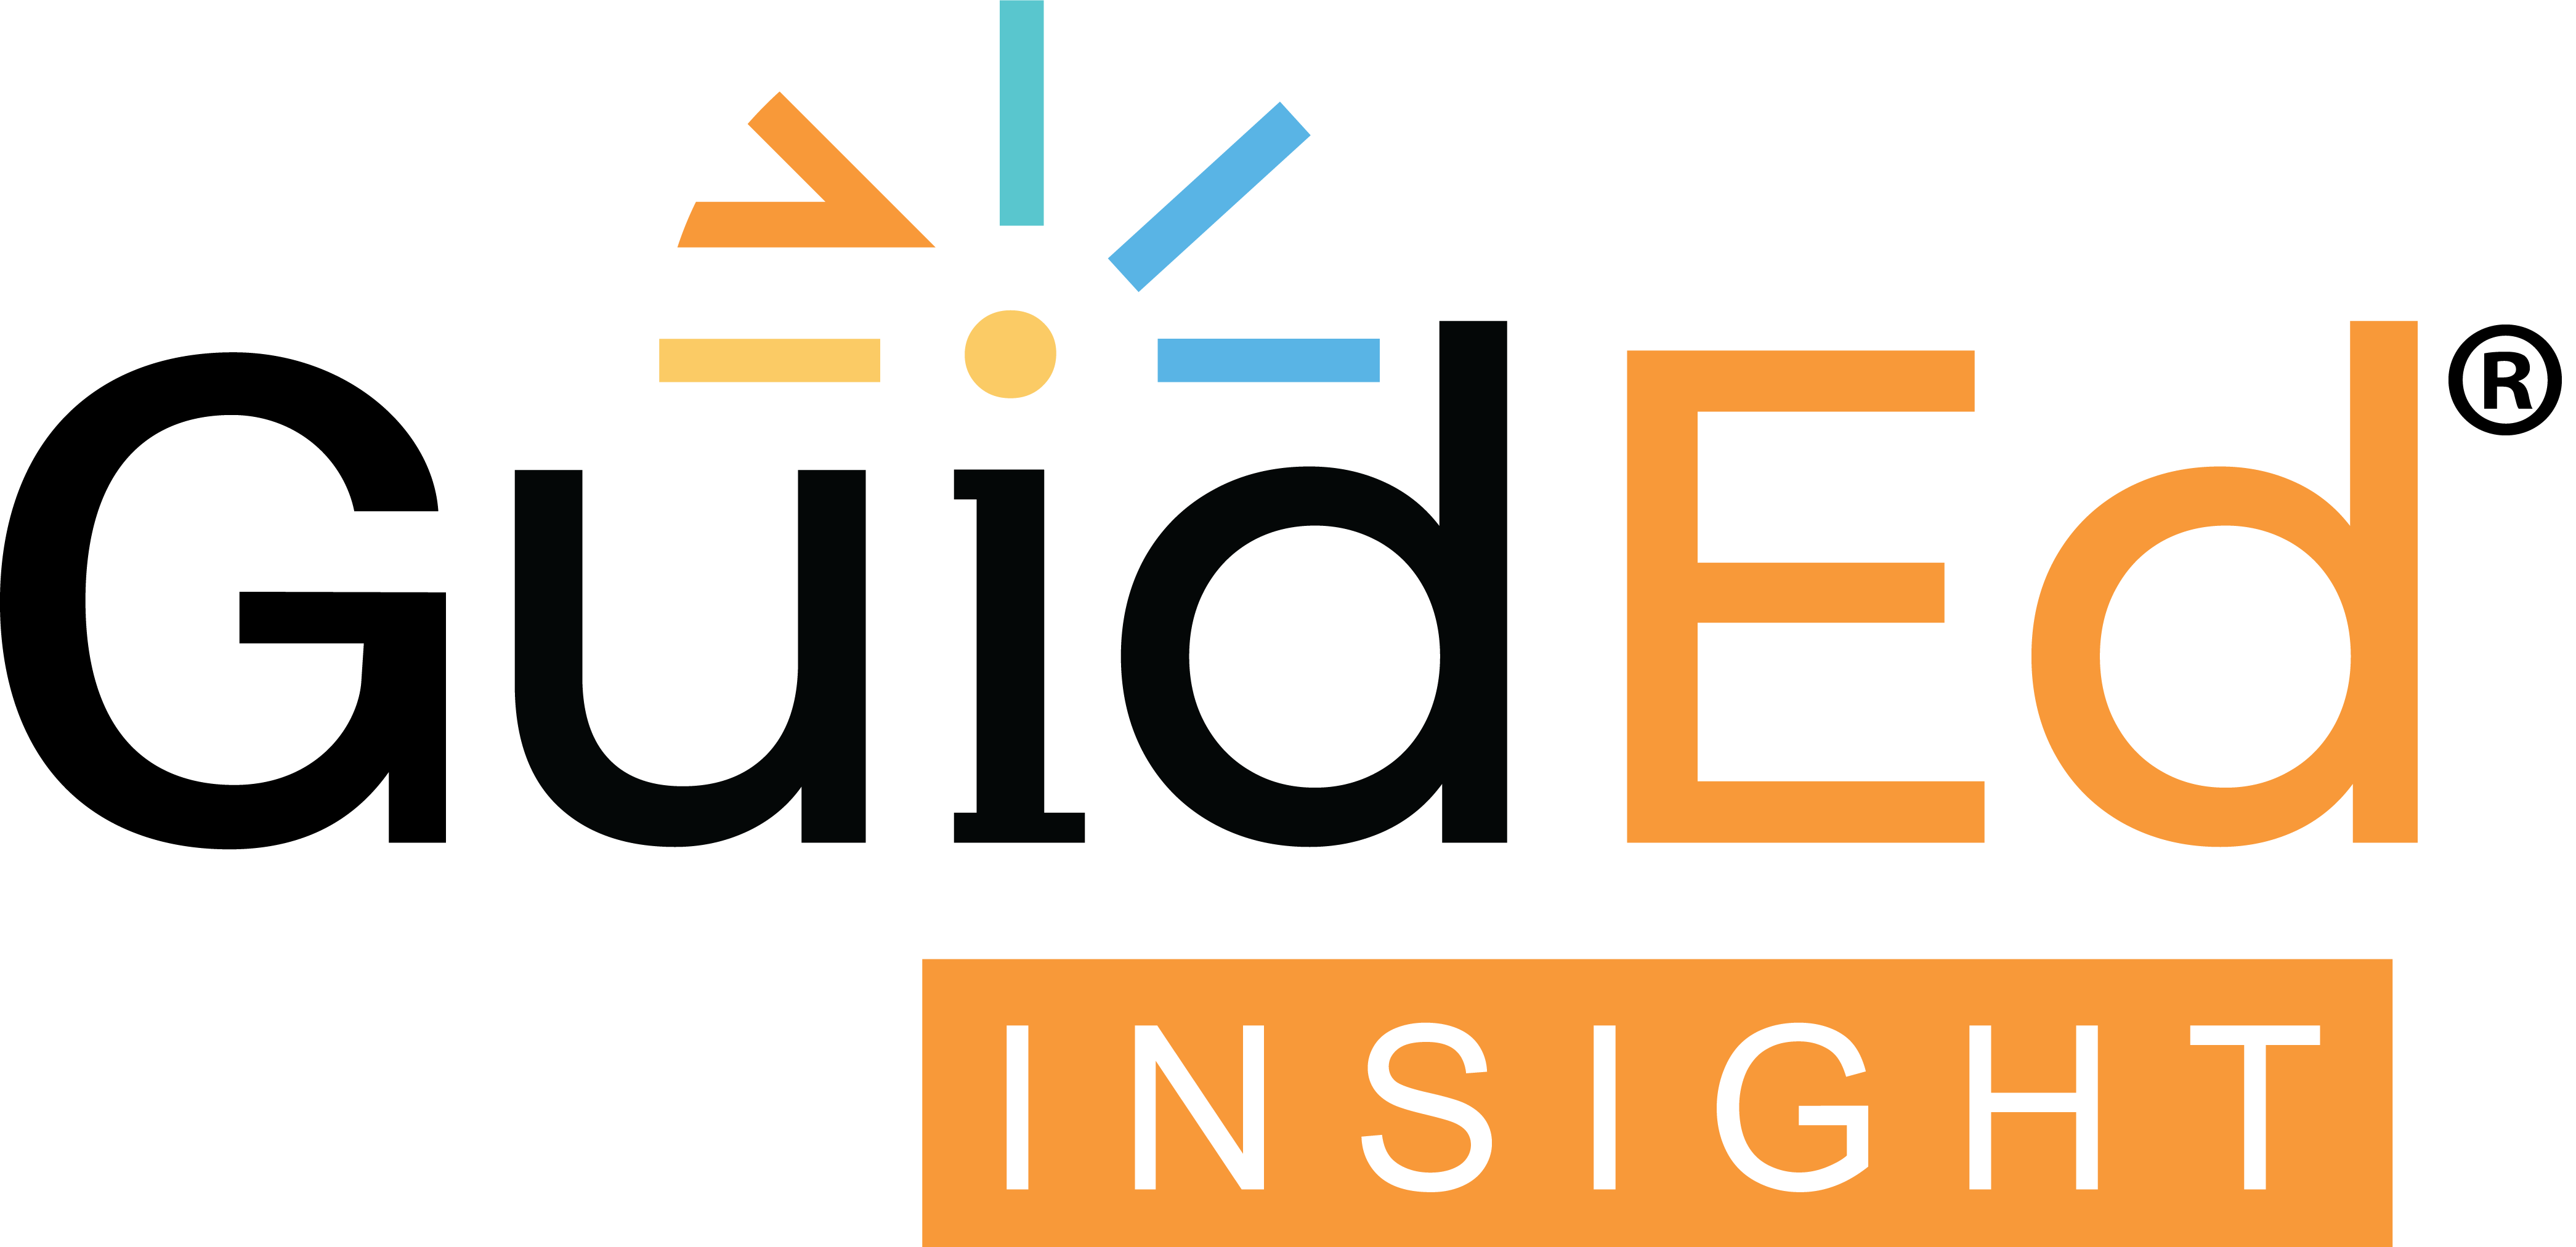 GuidEd Insight set to provide users with postsecondary data analysis and visualization to help close equity gaps